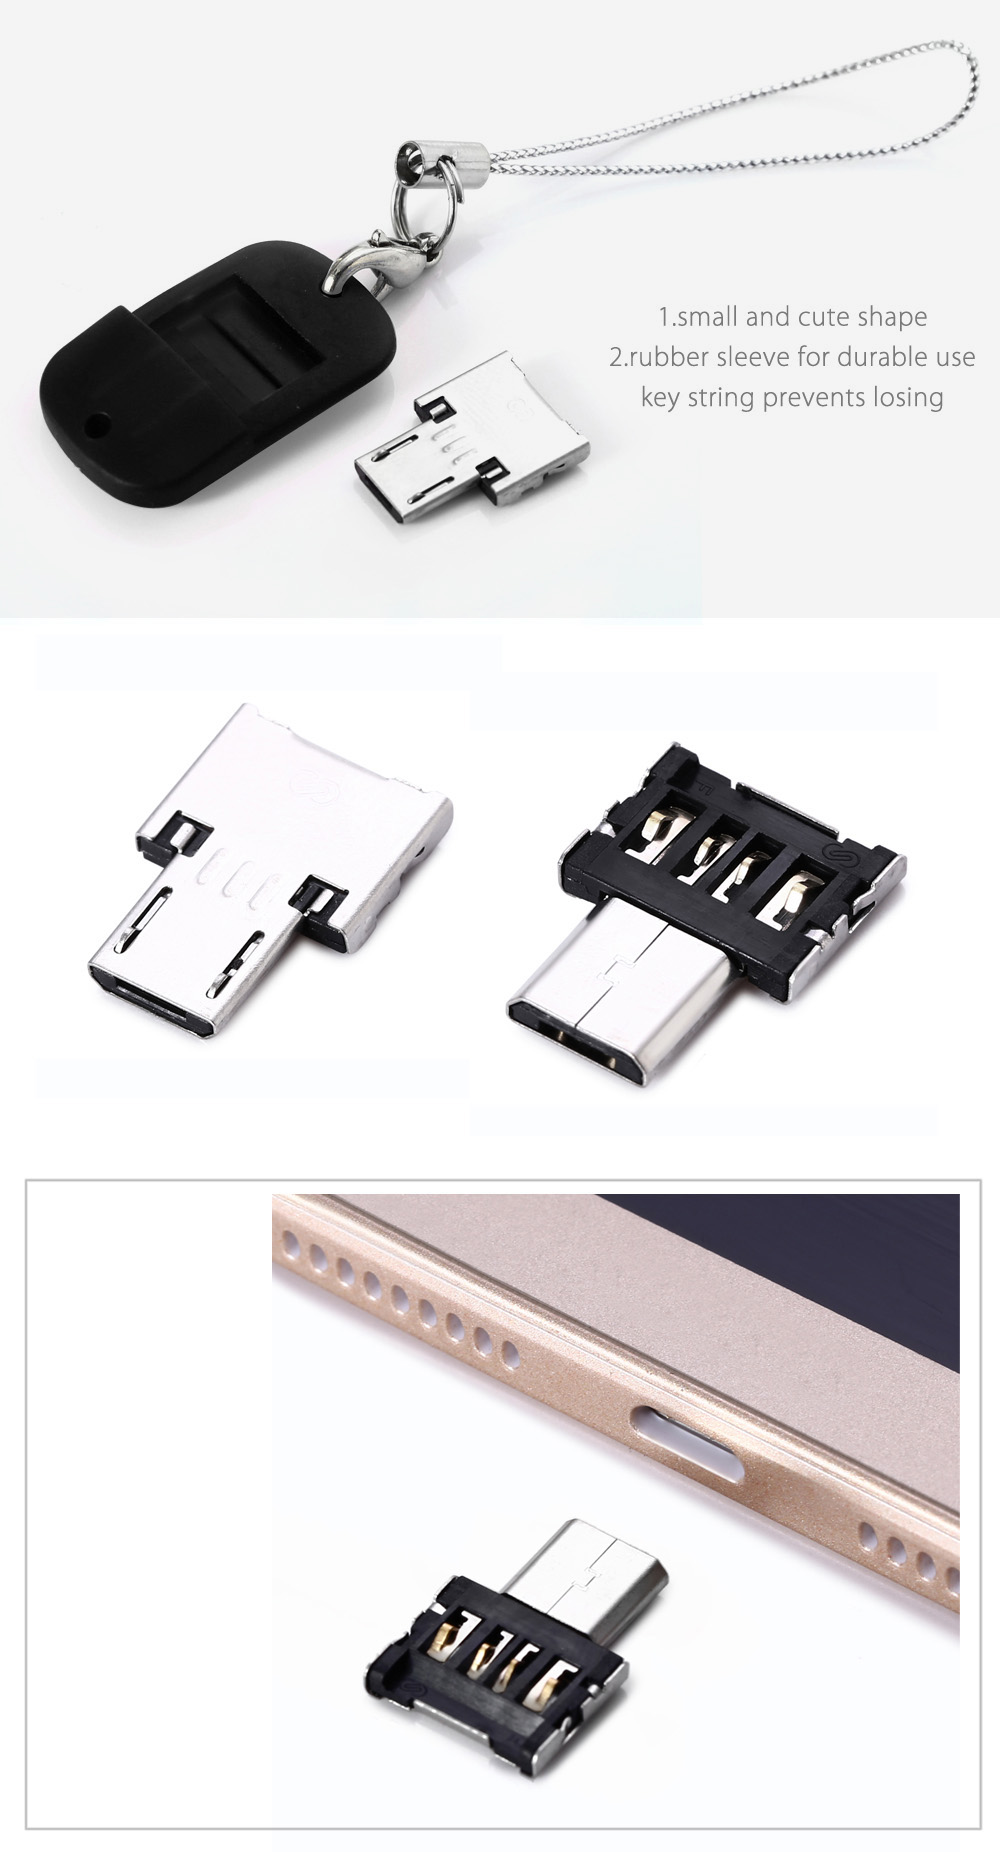 USB to Micro USB Male OTG Adapter with Rubber Sleeve